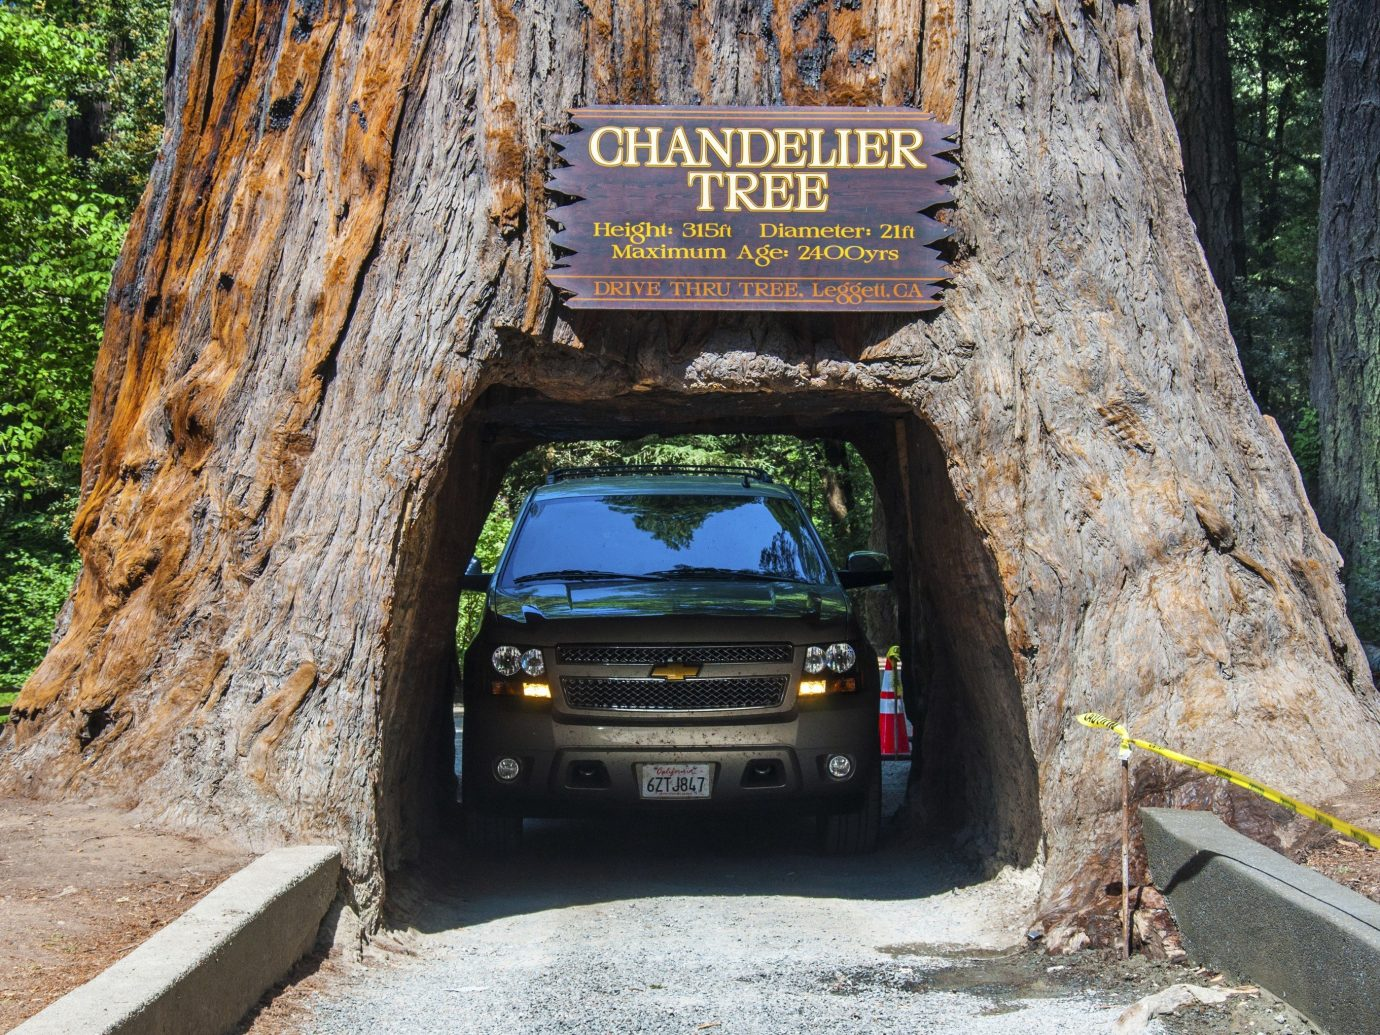 Offbeat tree outdoor road car off roading trail sign plant infrastructure way vehicle road trip trunk